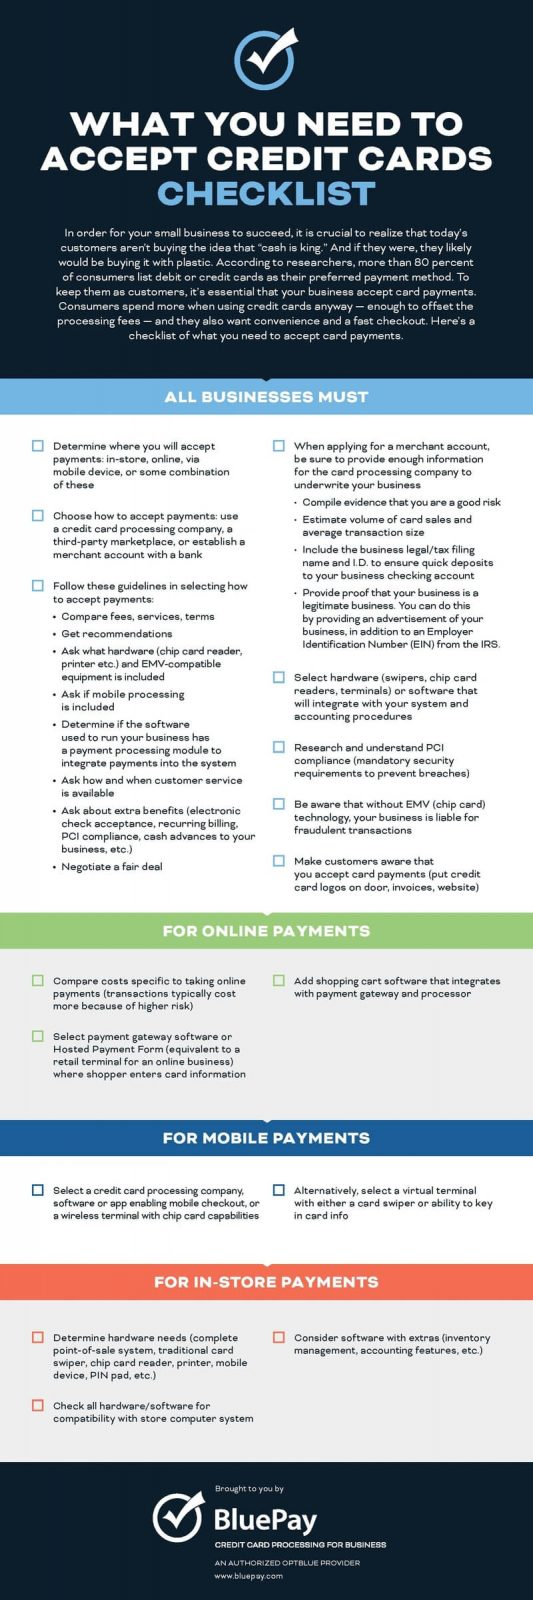 BluePay - What You Need To Accept Credit Cards Checklist